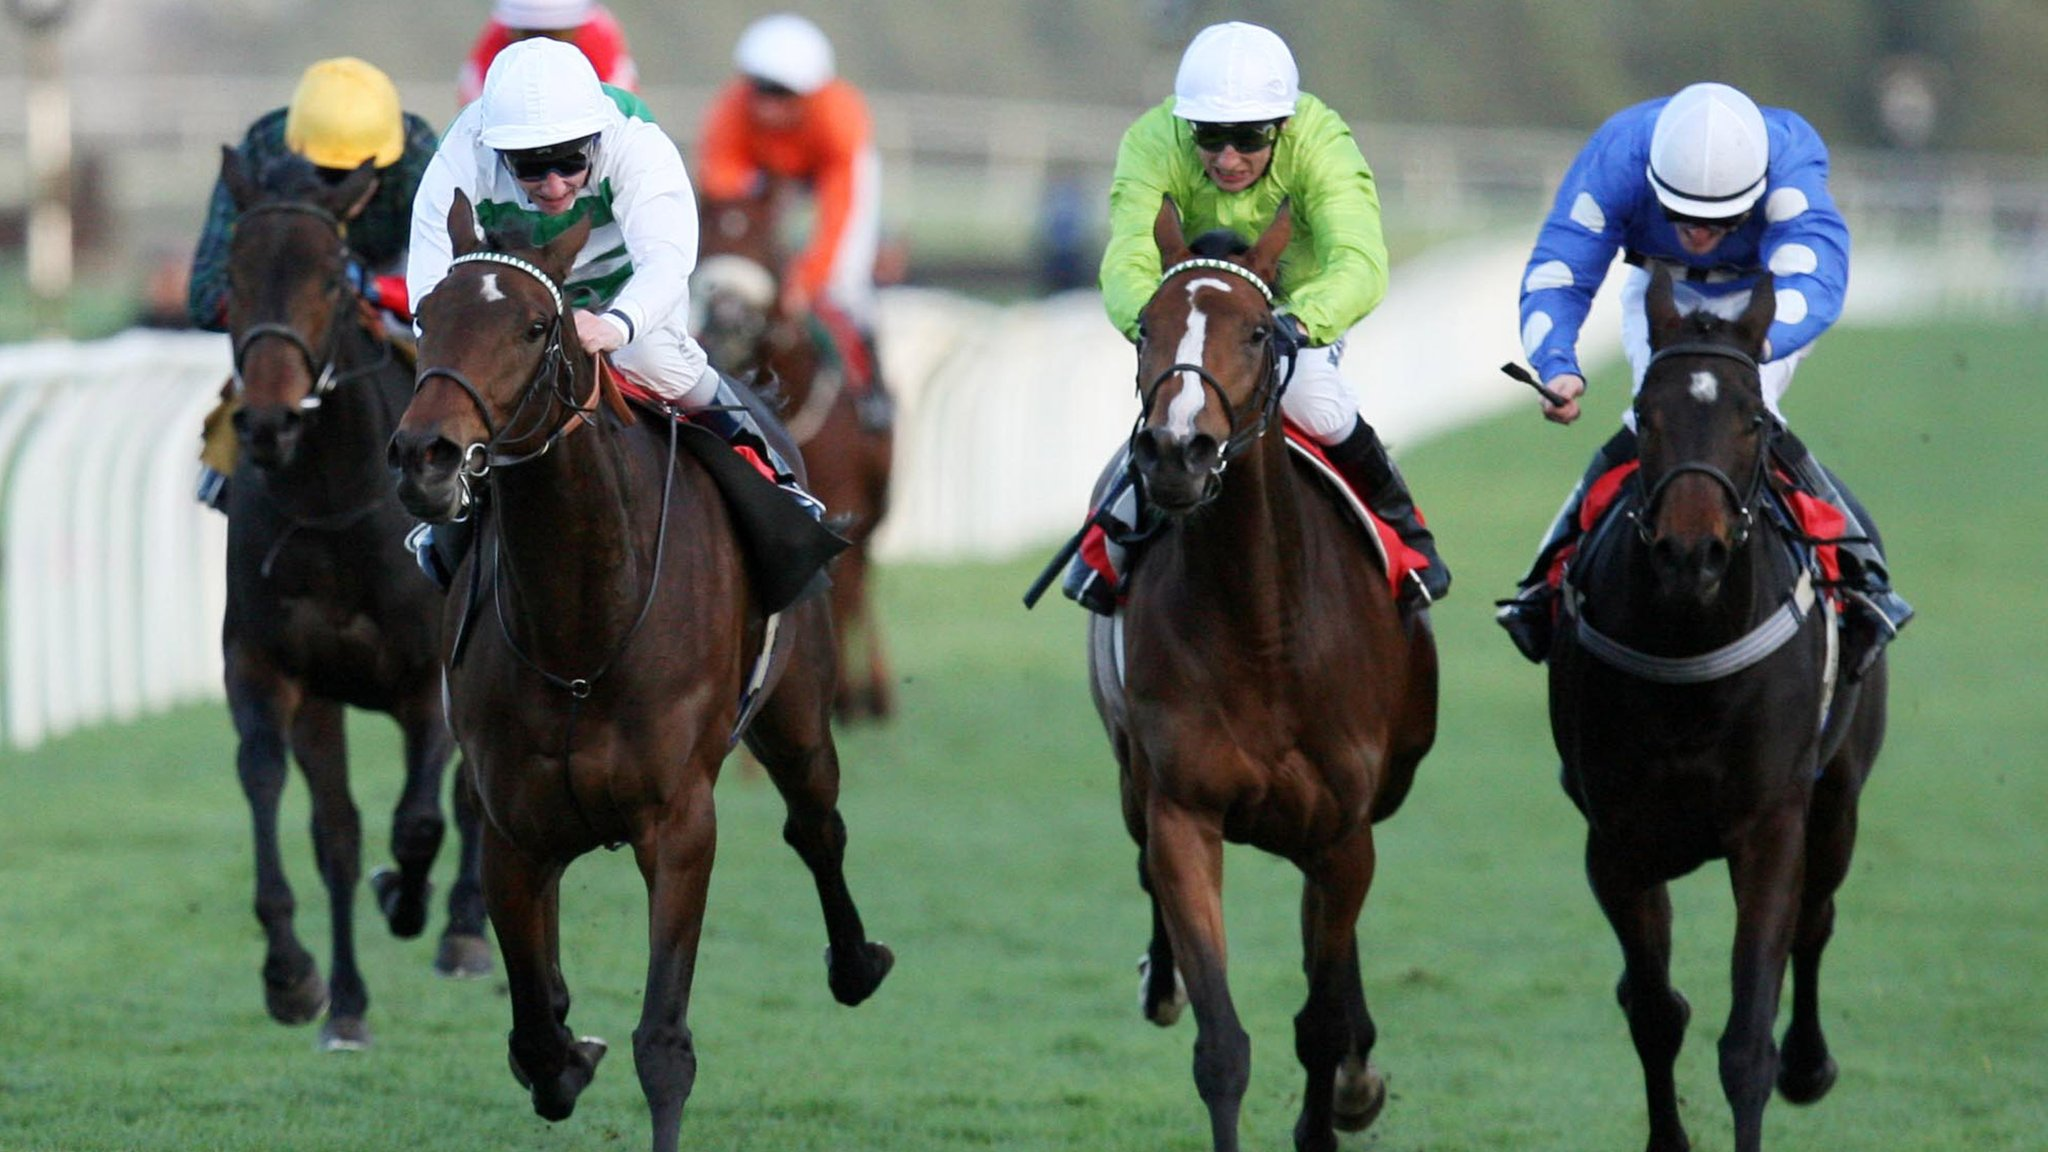 Truth or Not? Equine flu: Musselburgh racecourse wants to stage extra fixture after shut-down